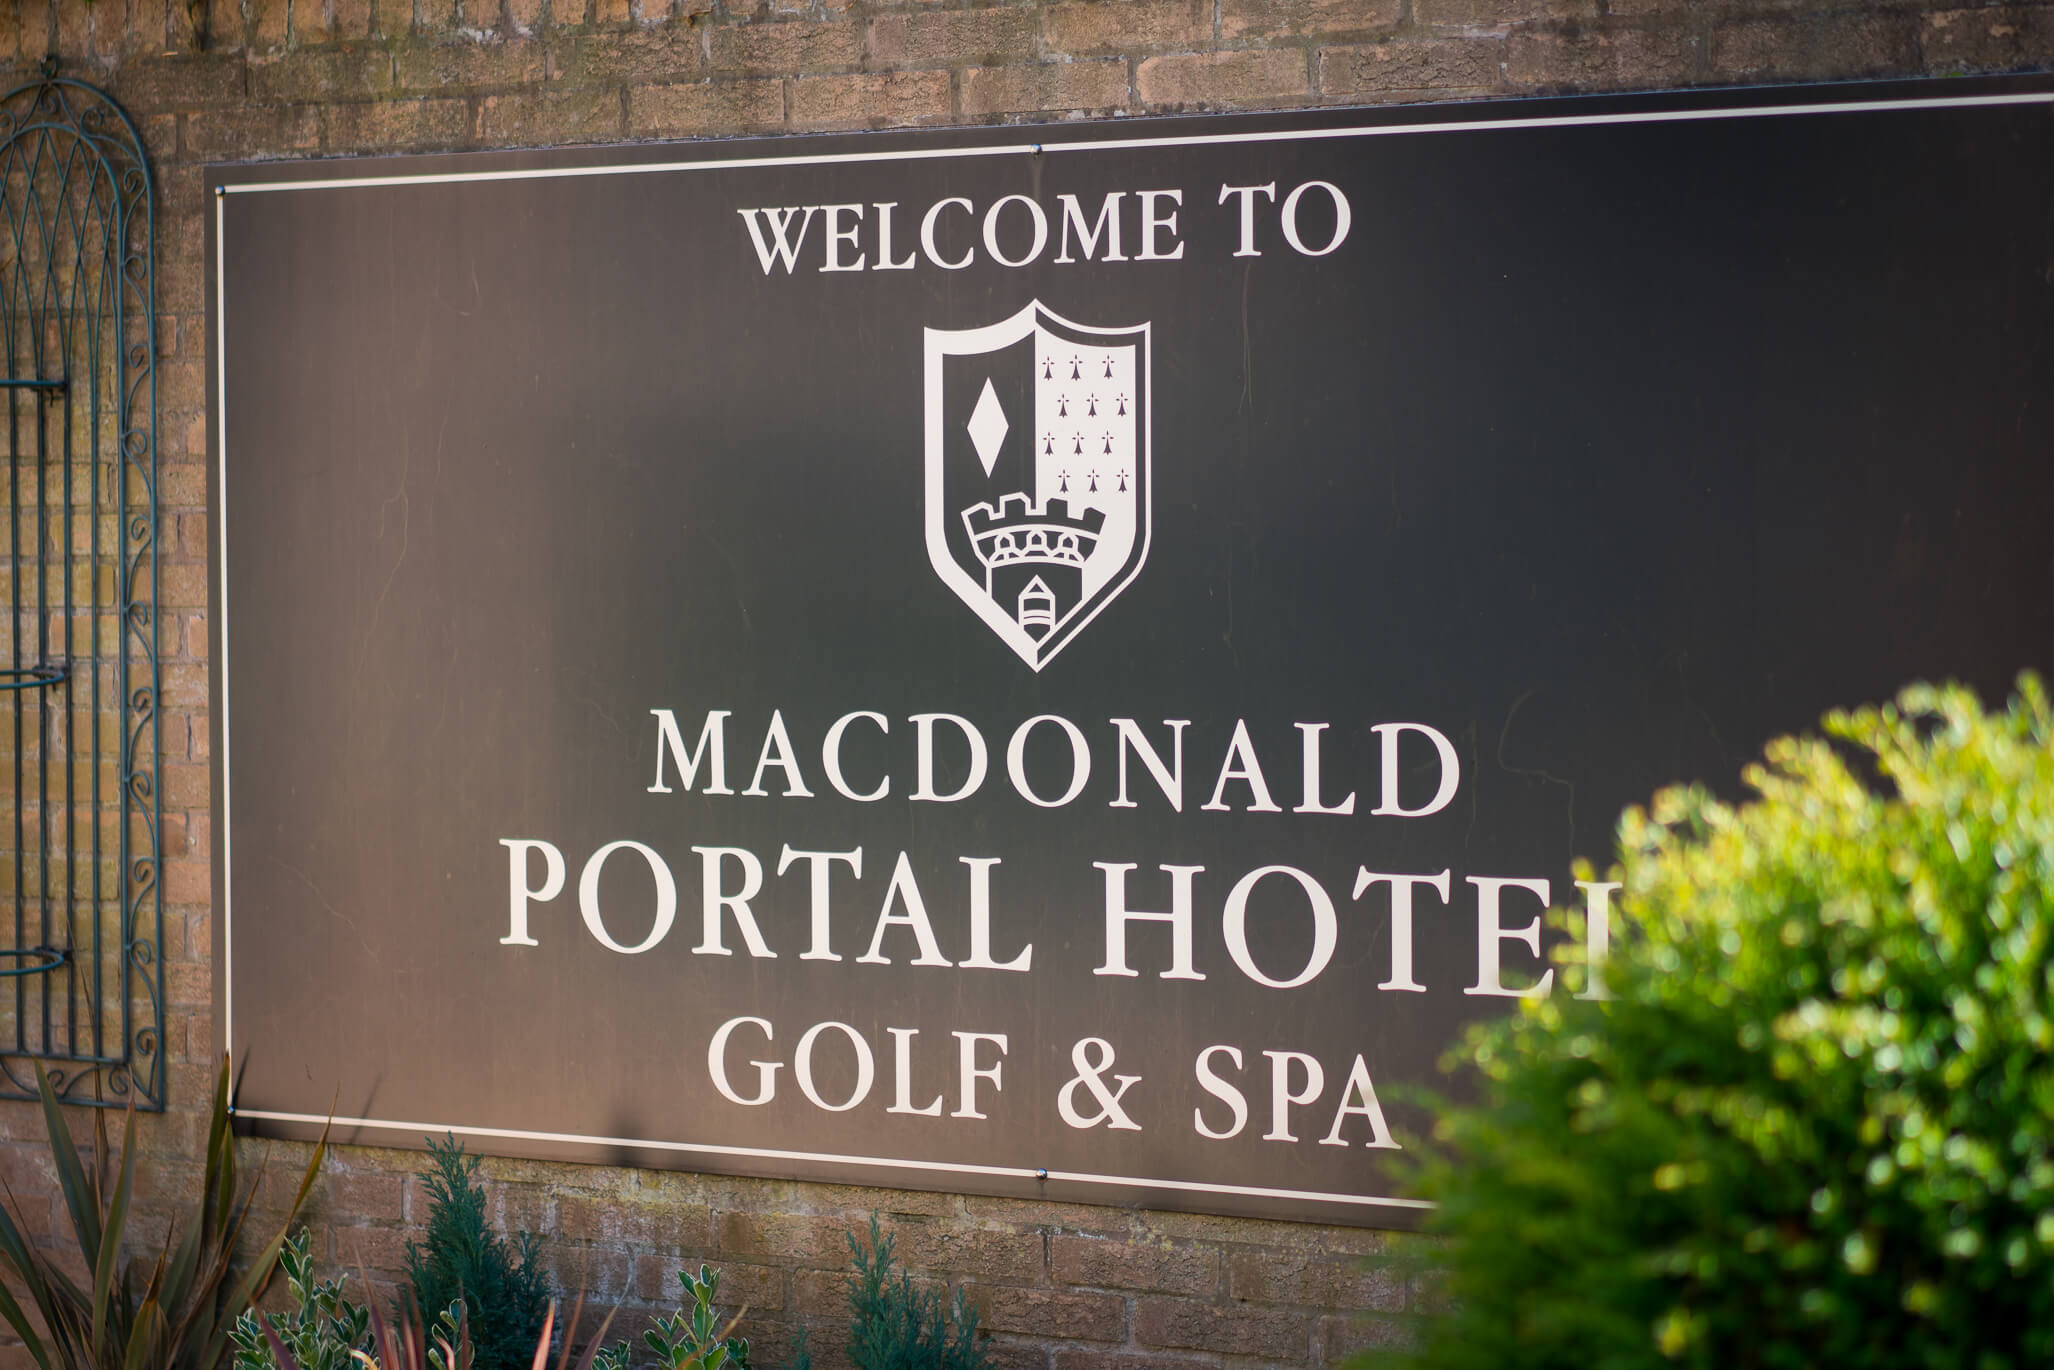 Macdonald Portal Hotel was the venue for HIP in Cheshire's corporate charity golf day